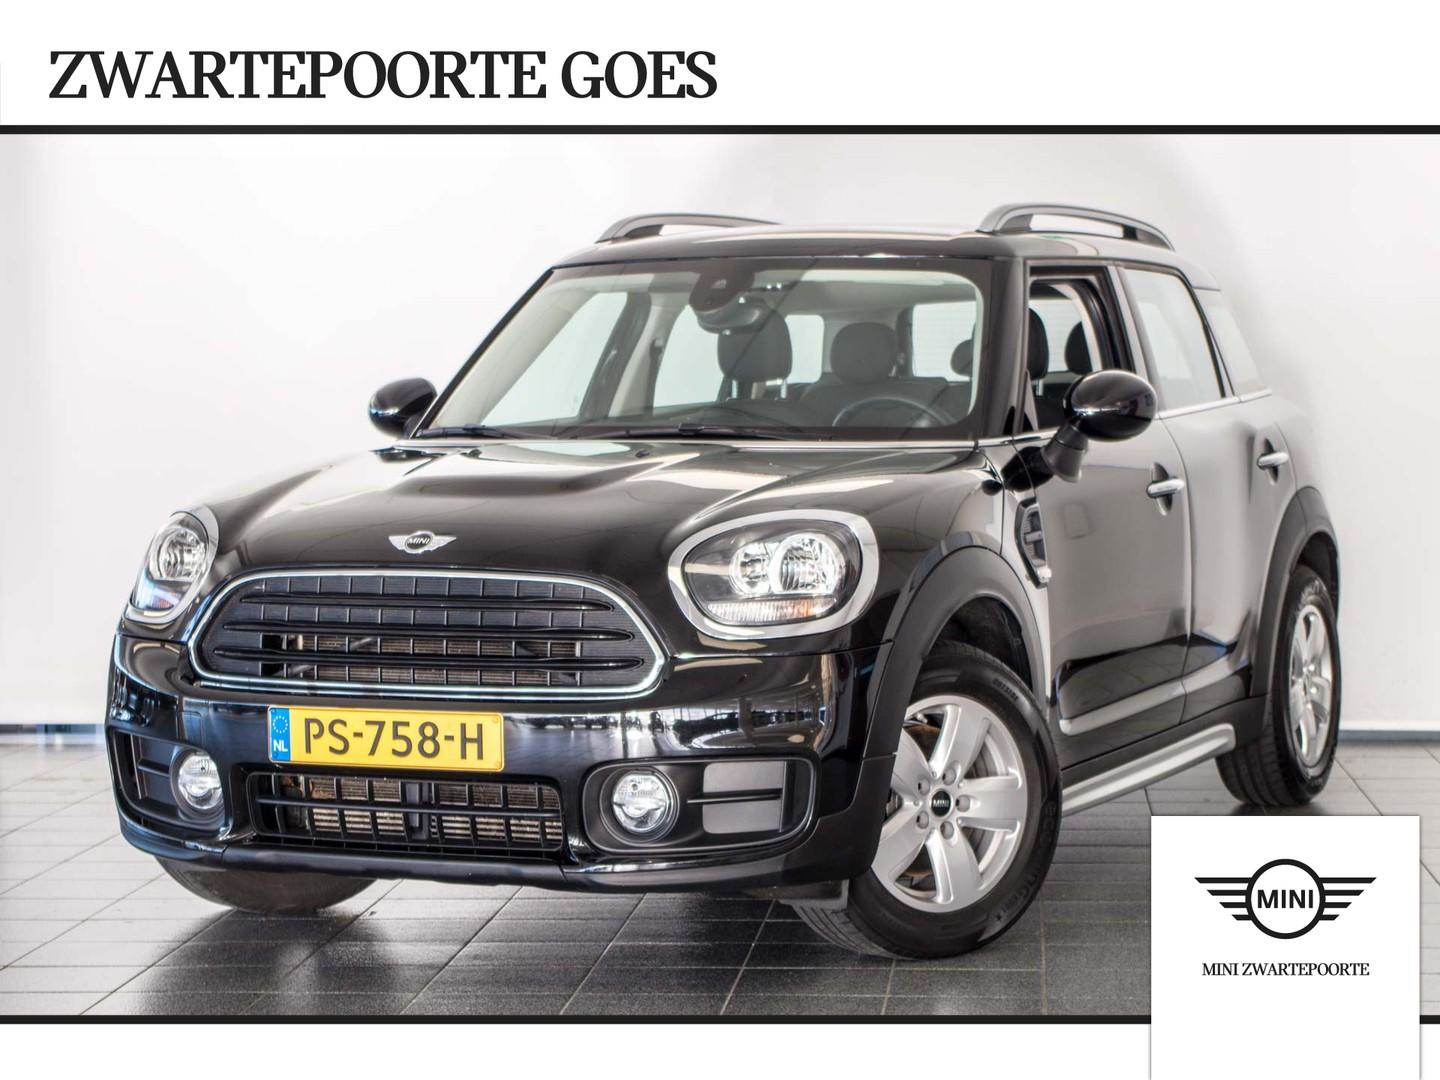 Mini Countryman 1.5 cooper